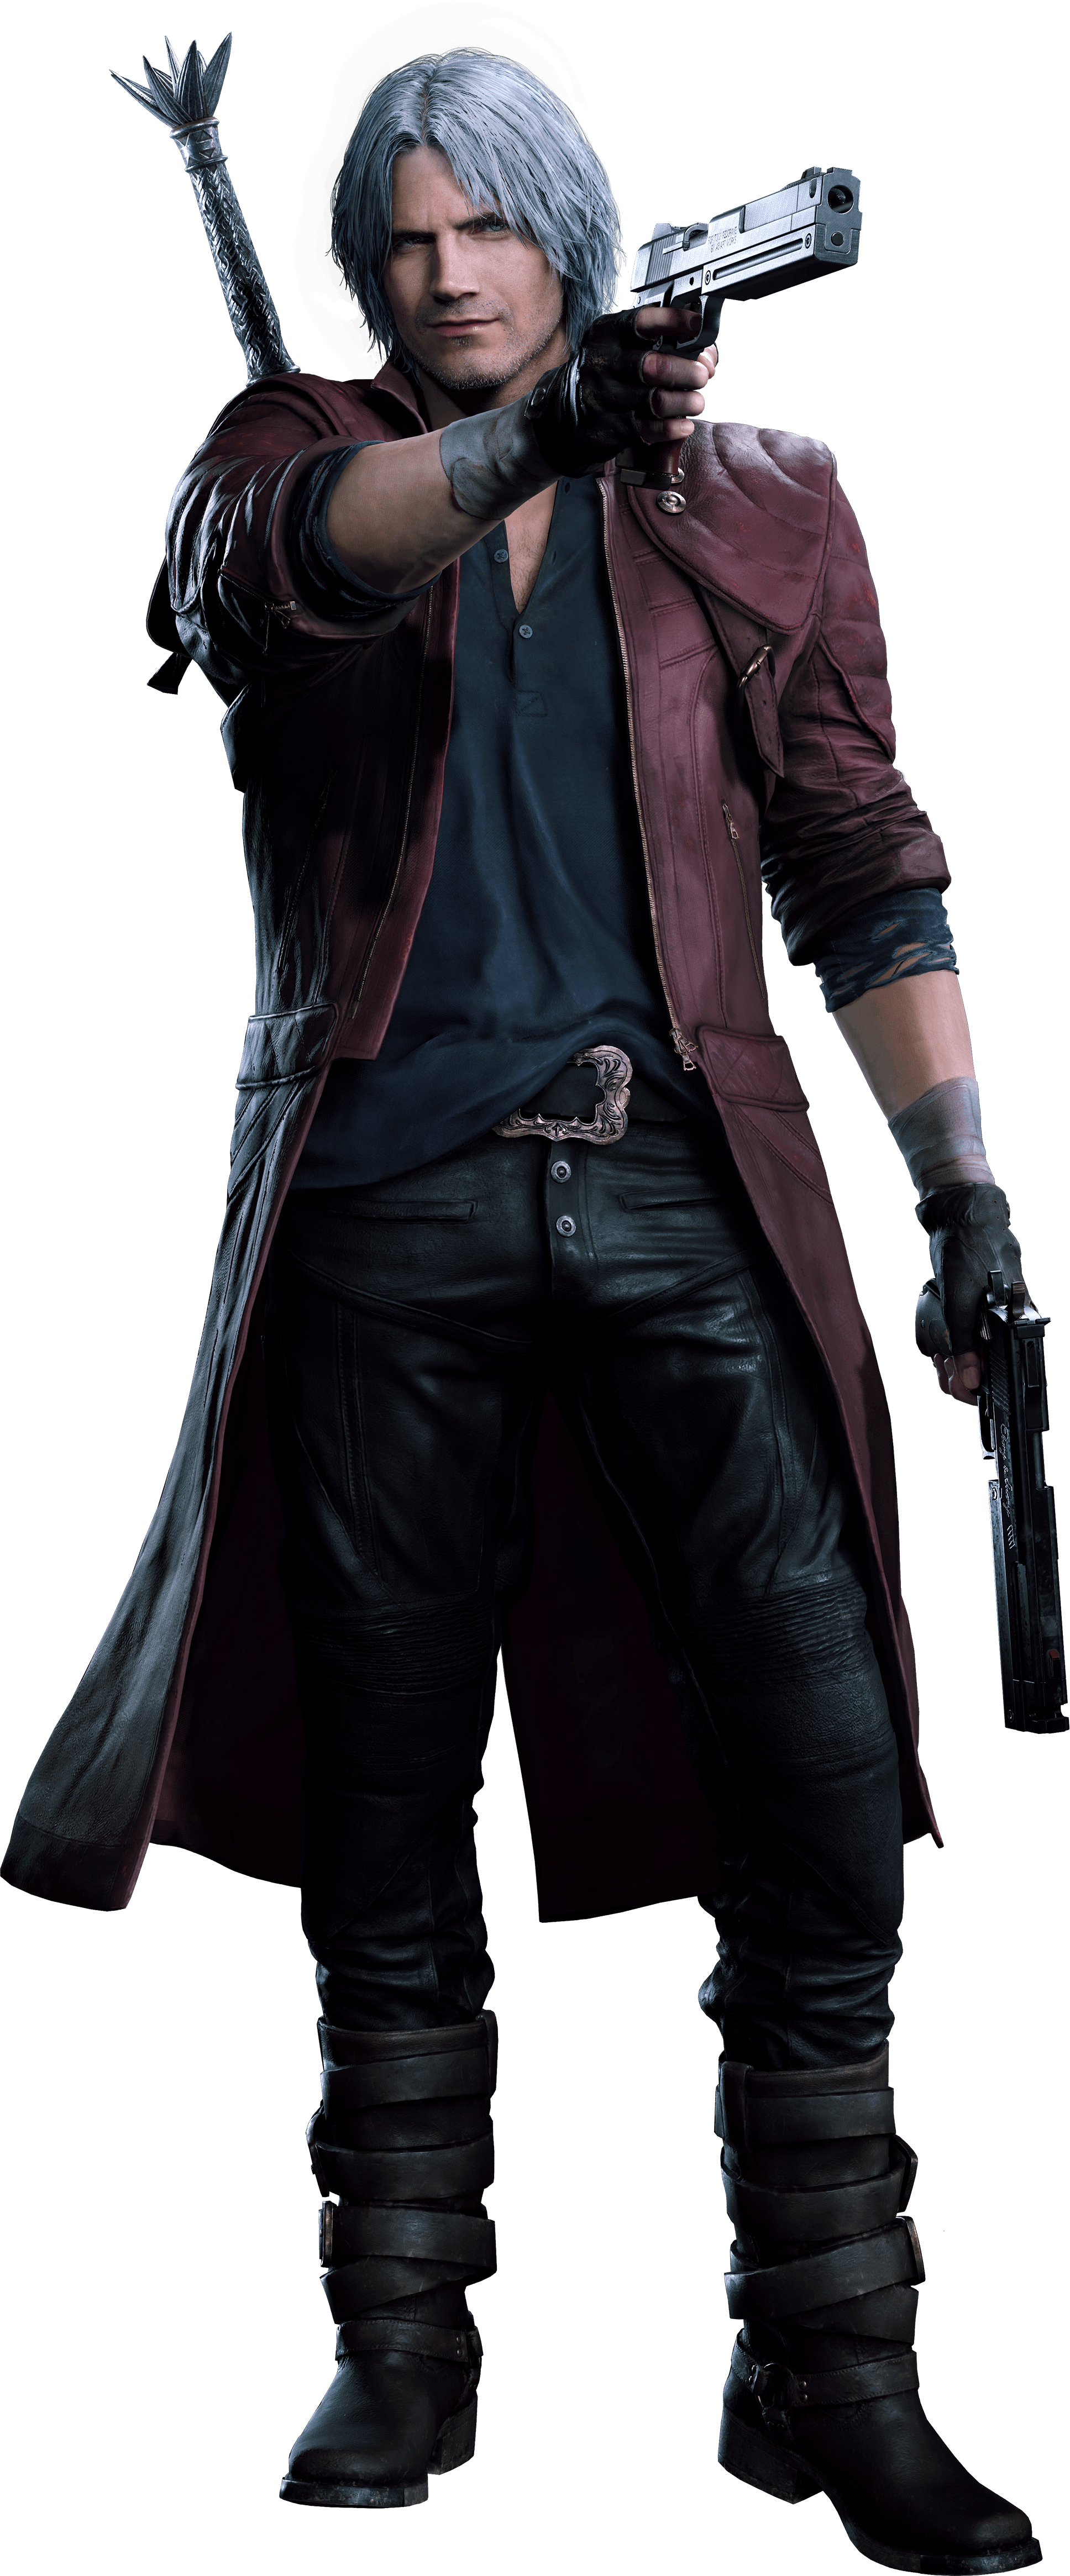 Devil May Cry 5 Mobile - Download and Play Devil May Cry 5